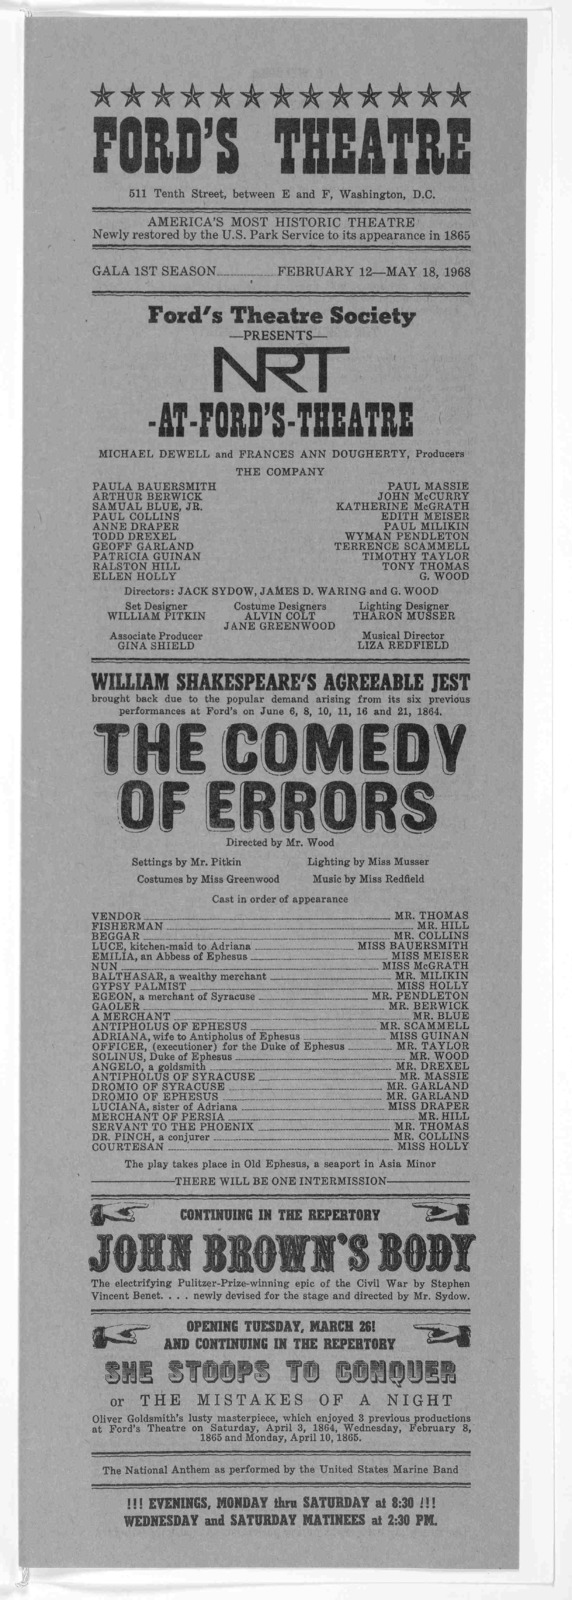 ... Ford's Theatre Society presents ... William Shakespeare's agreeable jest ... The Comedy of errors. [Wash.] NRT-at-Ford's Theatre, 1968.